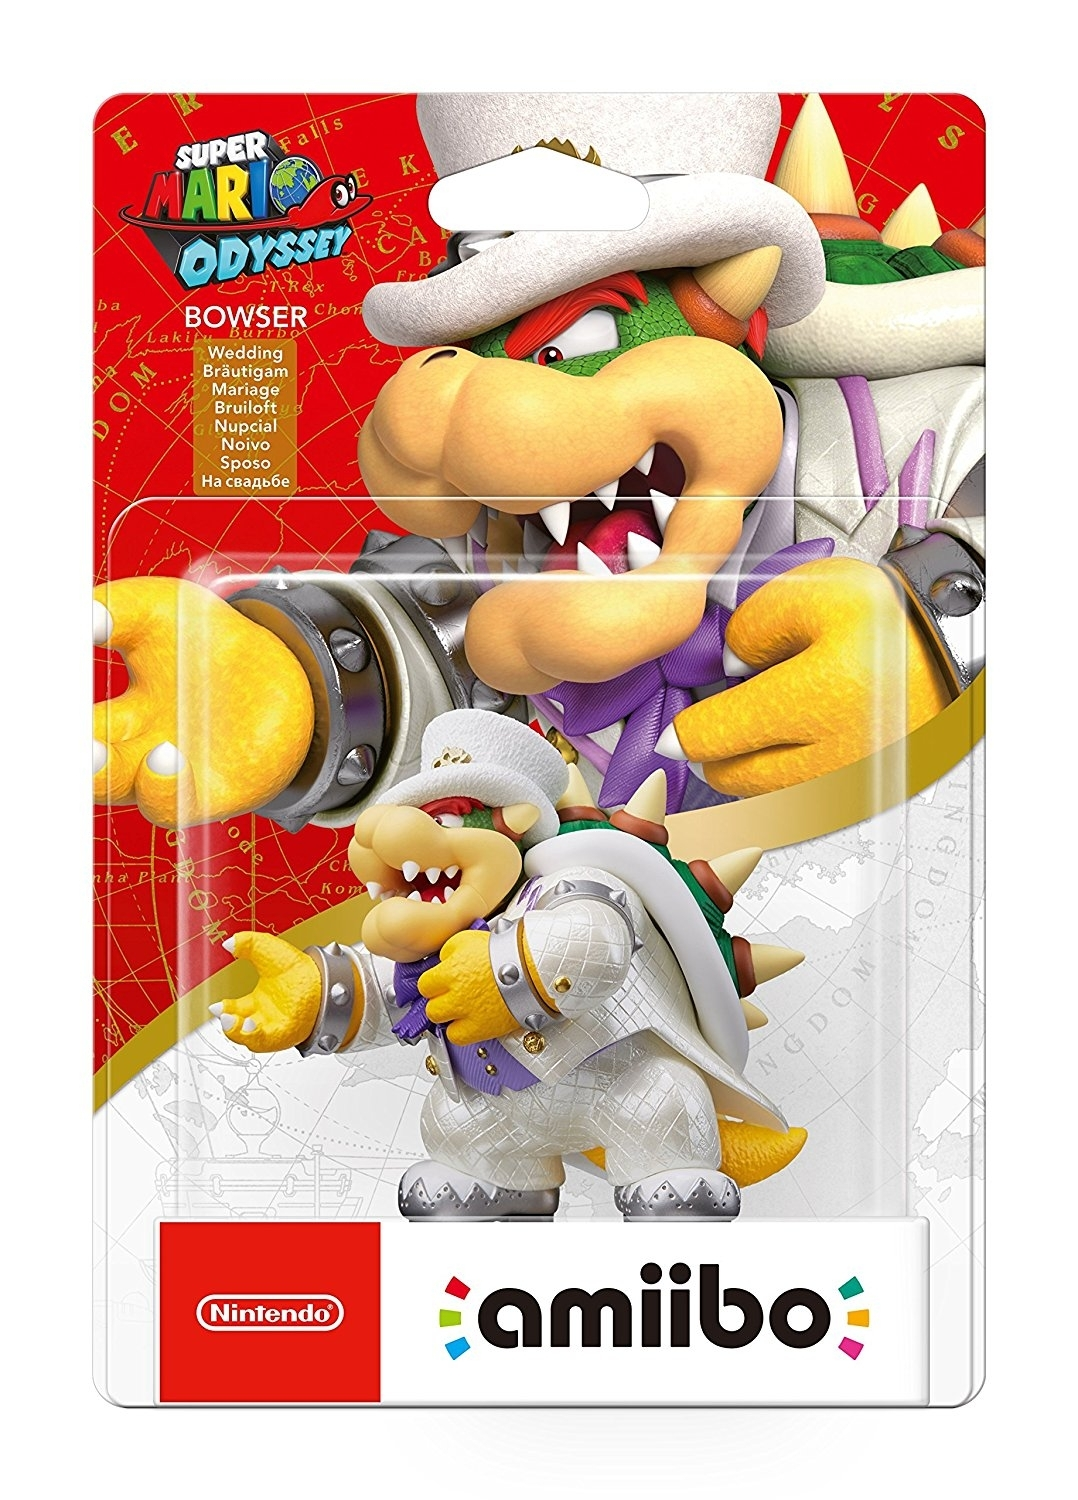 Figurka Amiibo Wedding Bowser Super Mario Odyssey (WiiU, 3DS,2DS, Nintendo Switch)